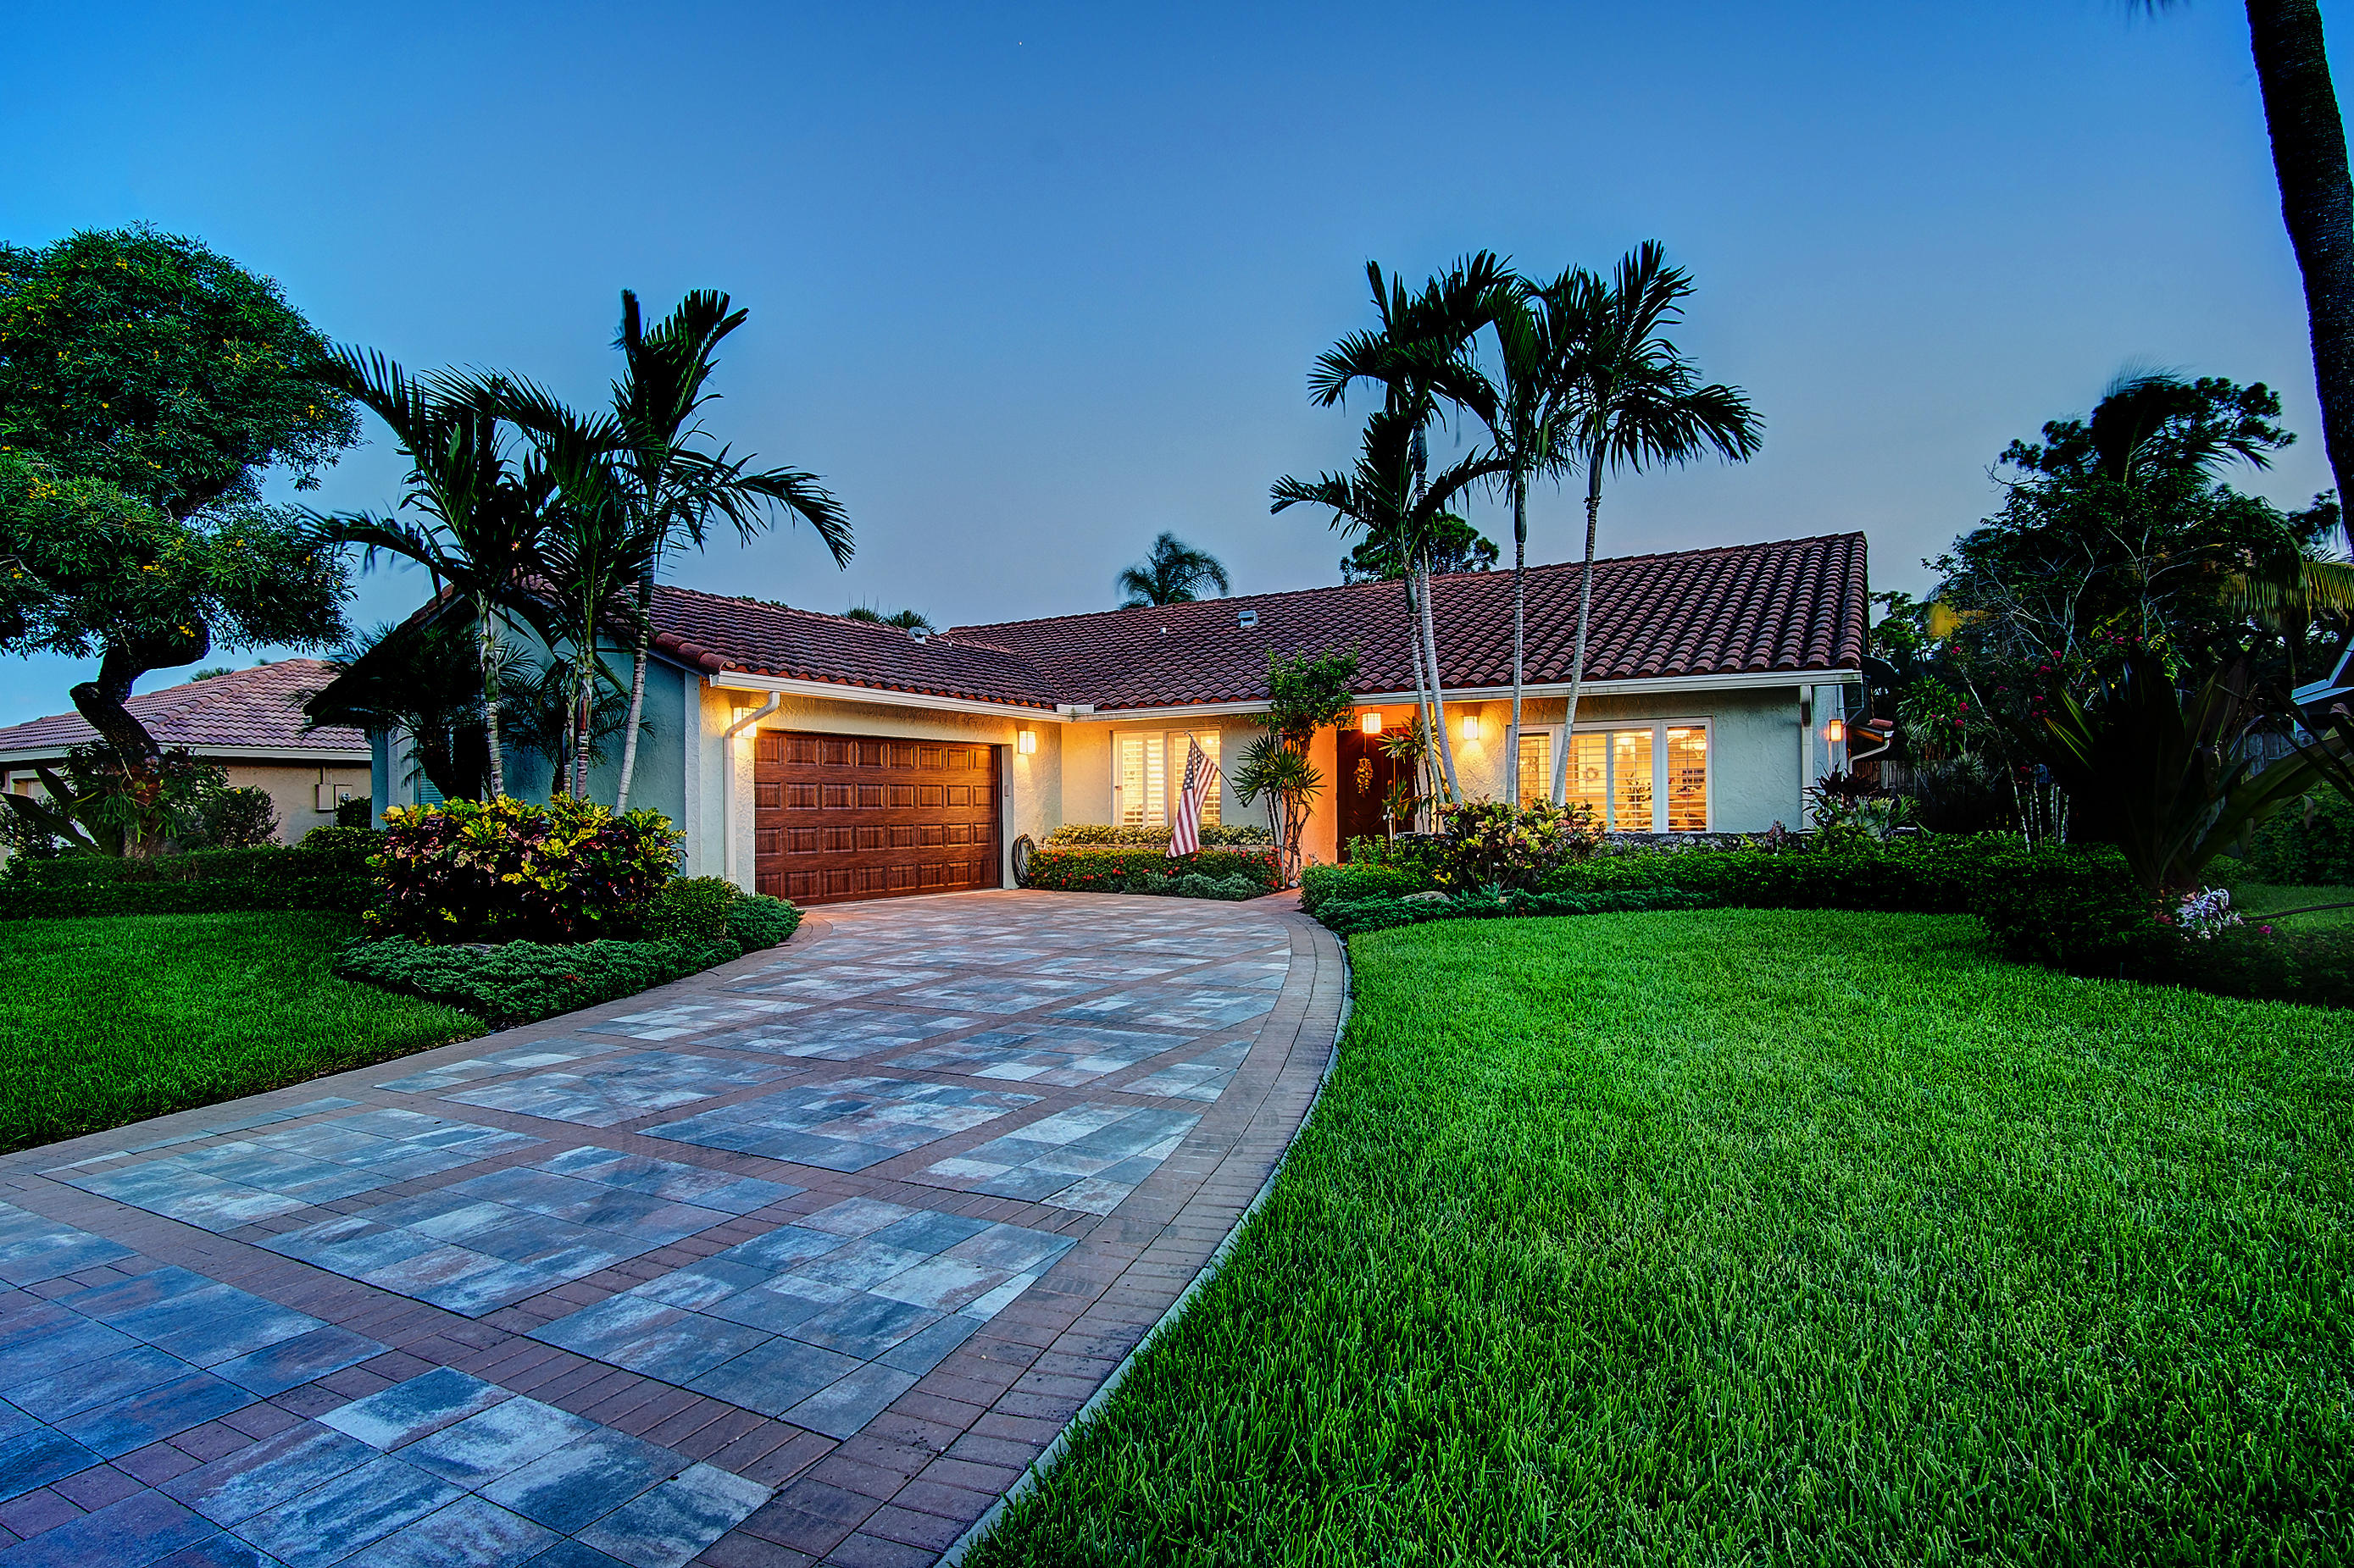 Home for sale in Palm Beach Farms Boca Raton Florida